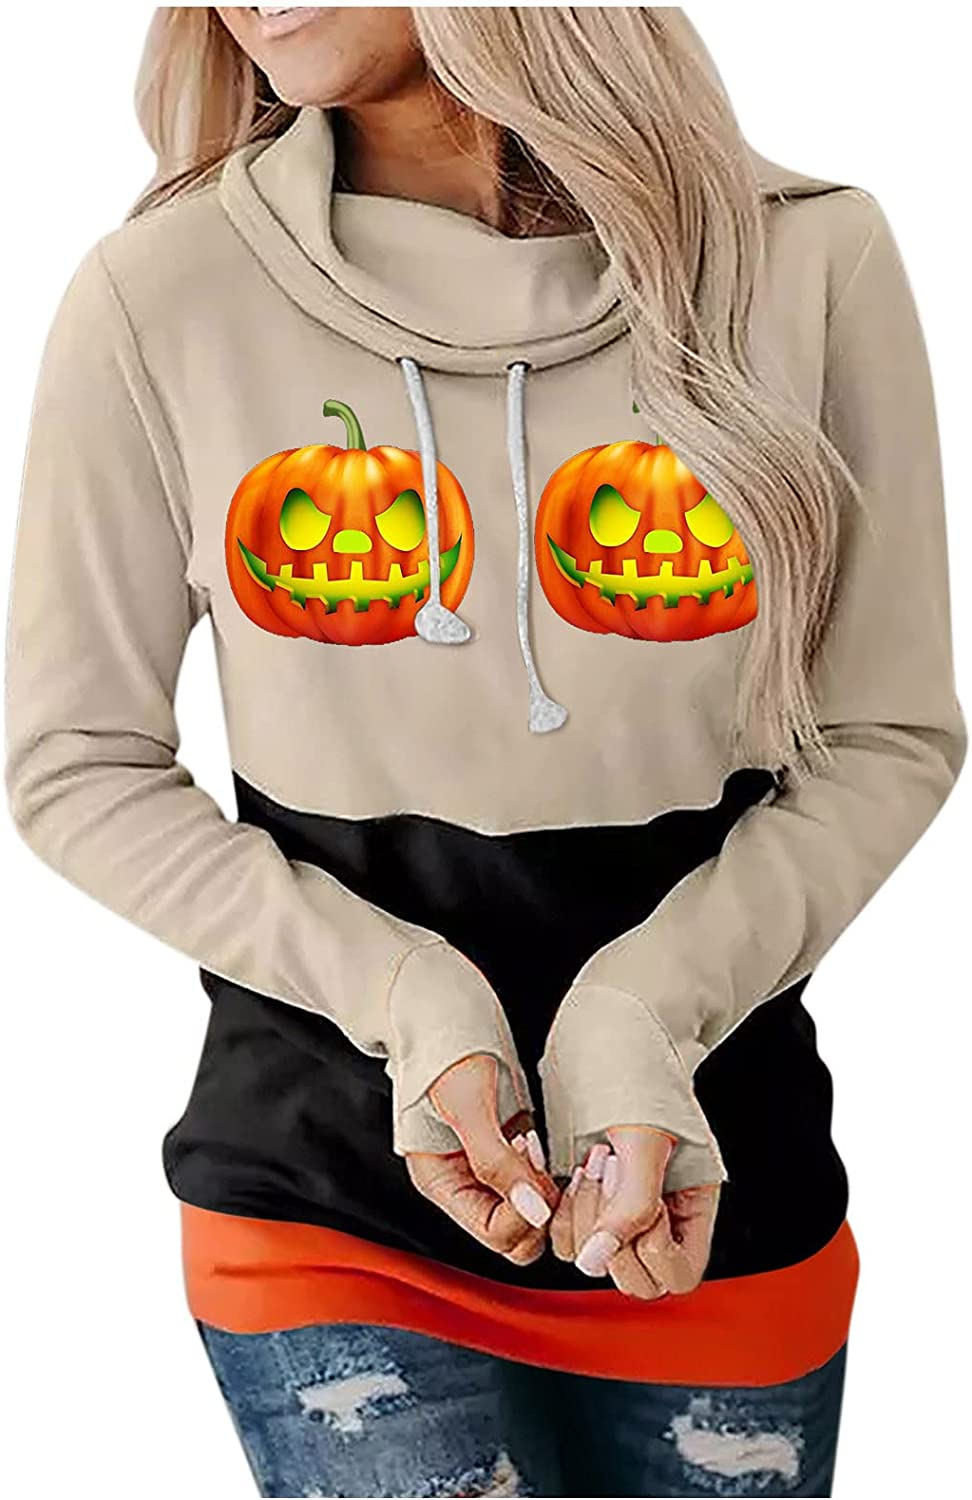 Goldweather Hooded Sweatshirts for Funny Hoodies Manufacturer regenerated product Max 55% OFF Women Halloween